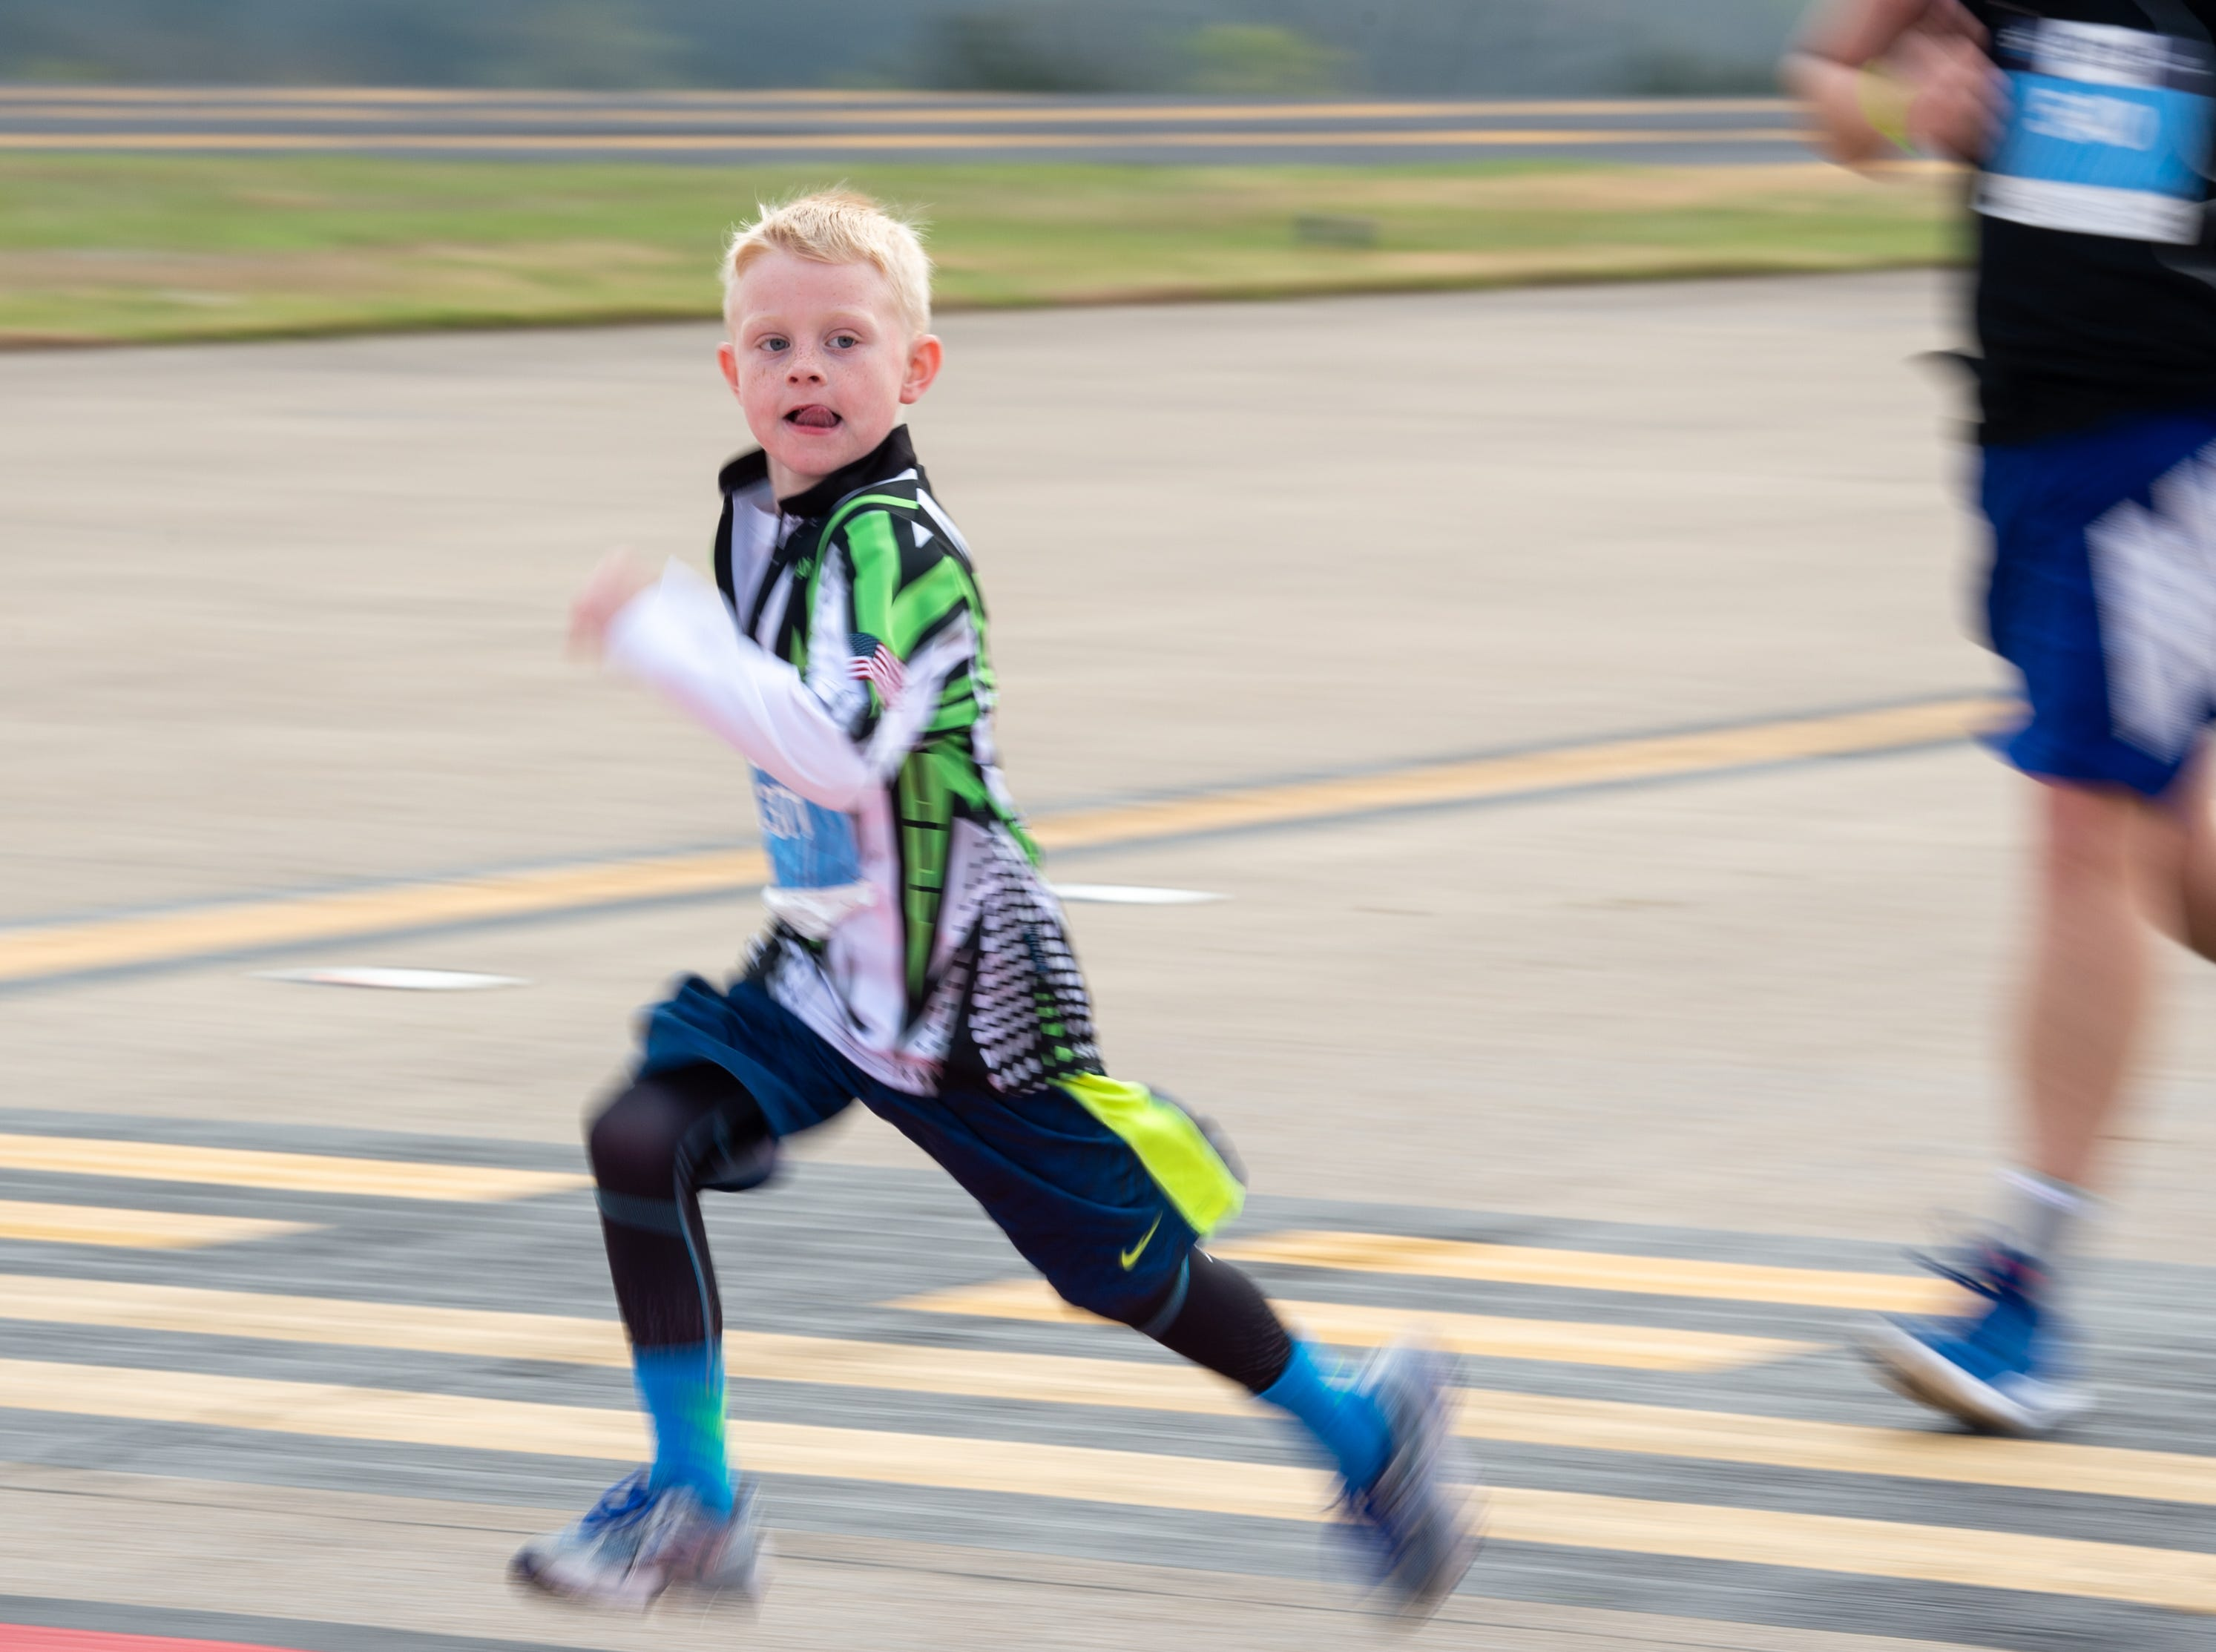 A child runs to the finish line during the BNA 5K on the Runway at Nashville International Airport on Runway 2R/20L Saturday, April 6, 2019, in Nashville, Tenn.